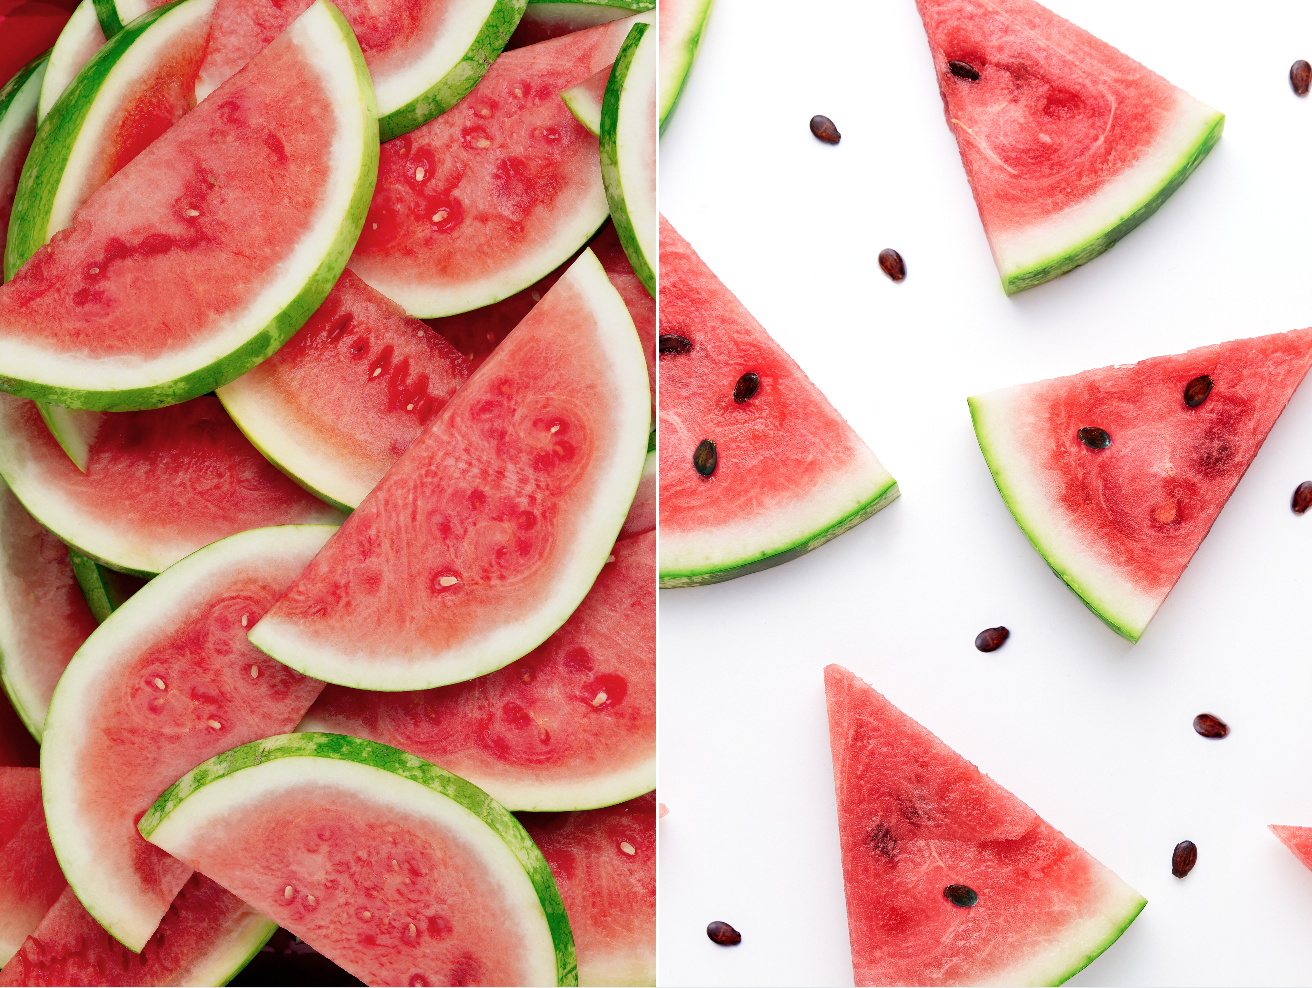 Seedless vs. Seeded Watermelon Getty 8/14/19